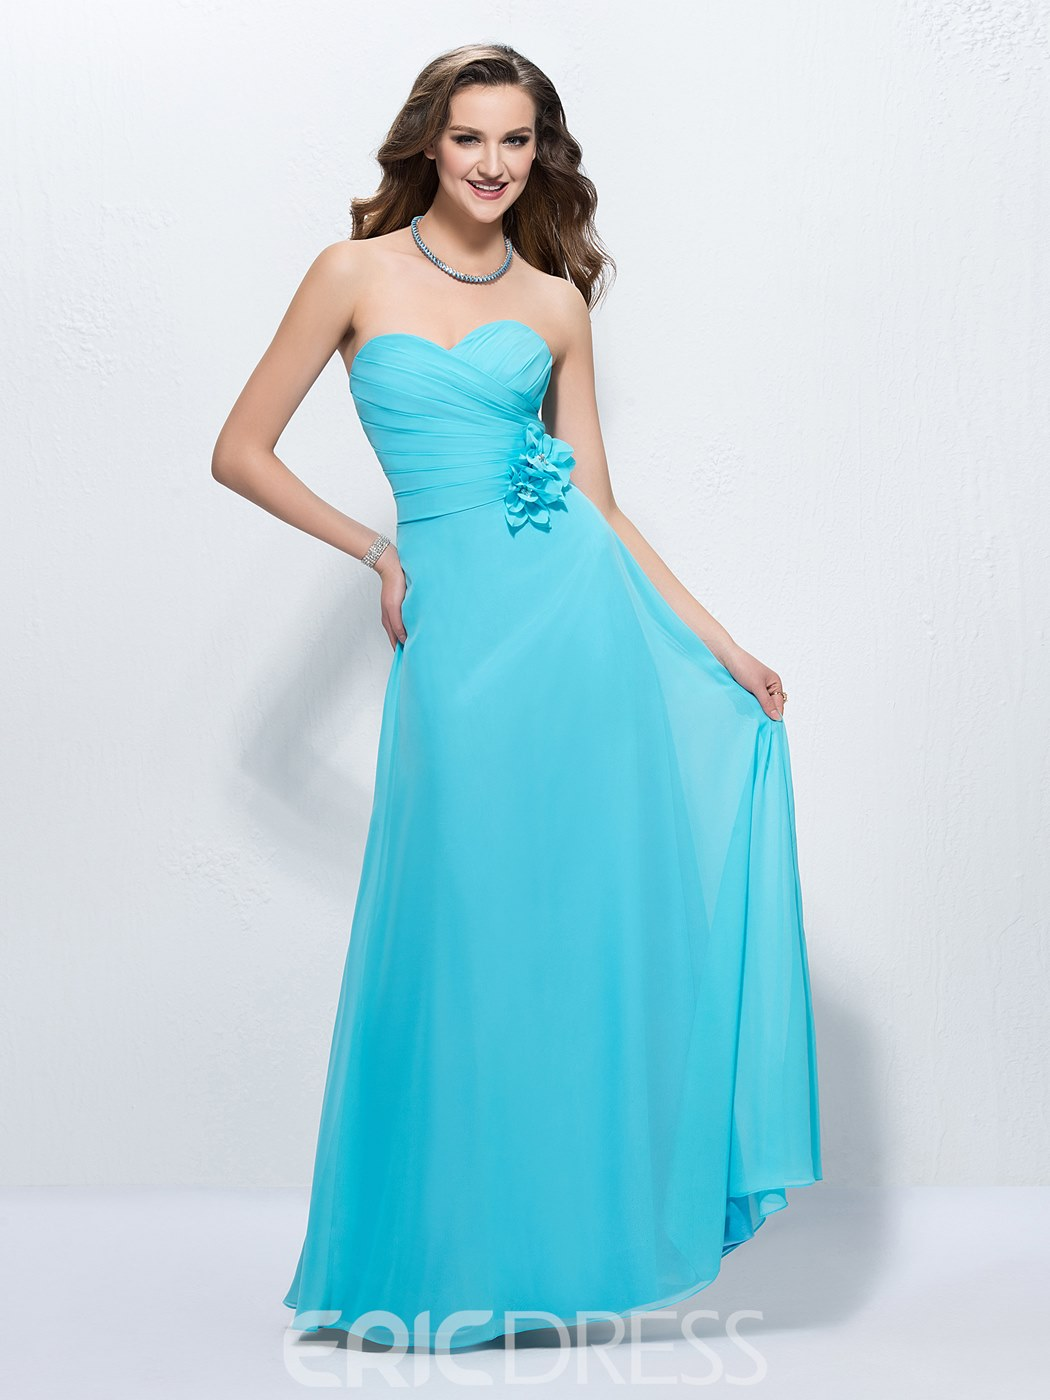 050c3cae7bd Ice Blue Strapless Prom Dress - Gomes Weine AG